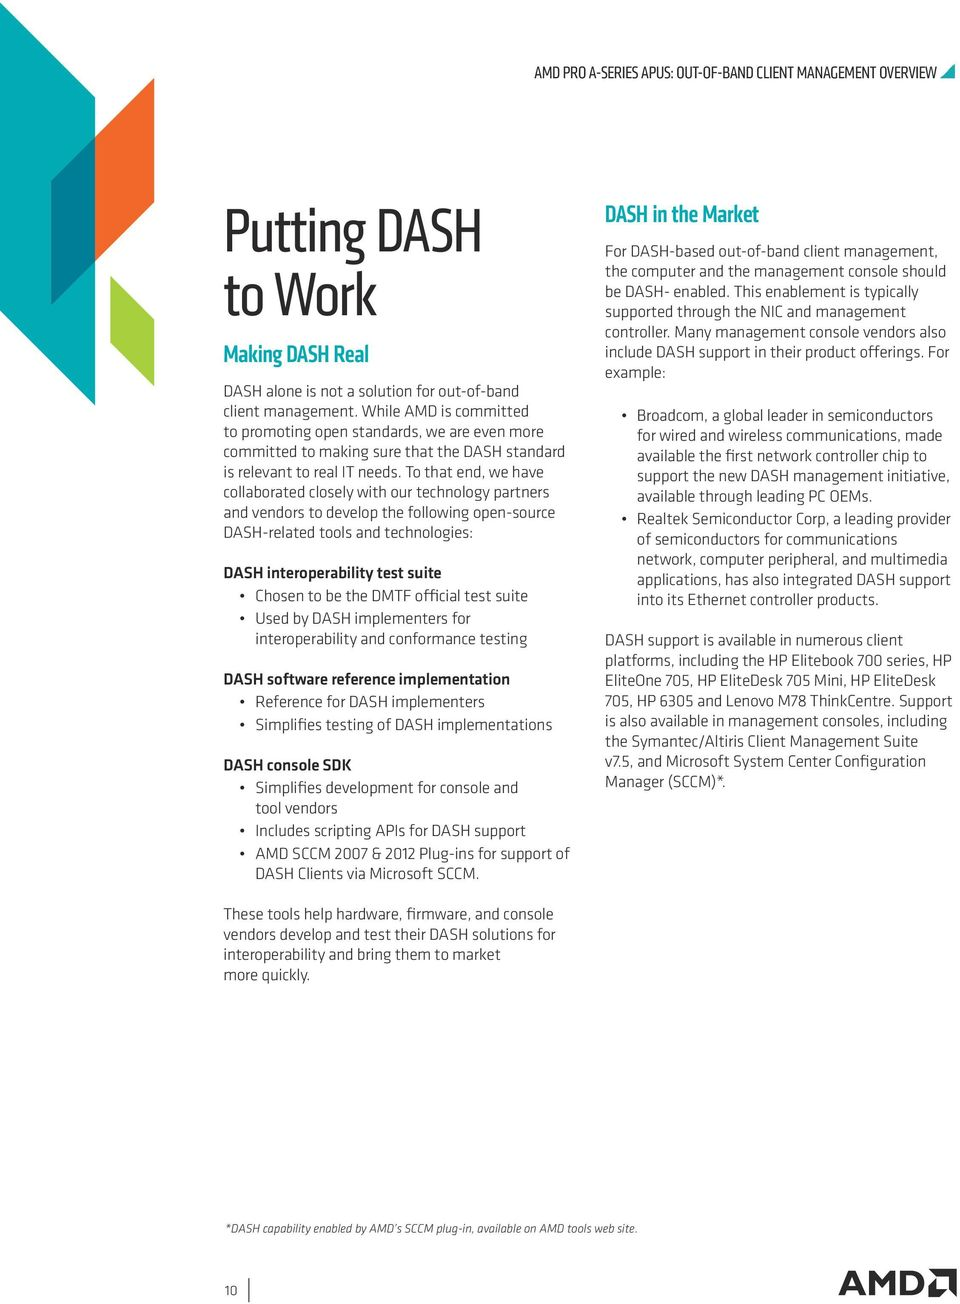 To that end, we have collaborated closely with our technology partners and vendors to develop the following open-source DASH-related tools and technologies: DASH interoperability test suite Chosen to